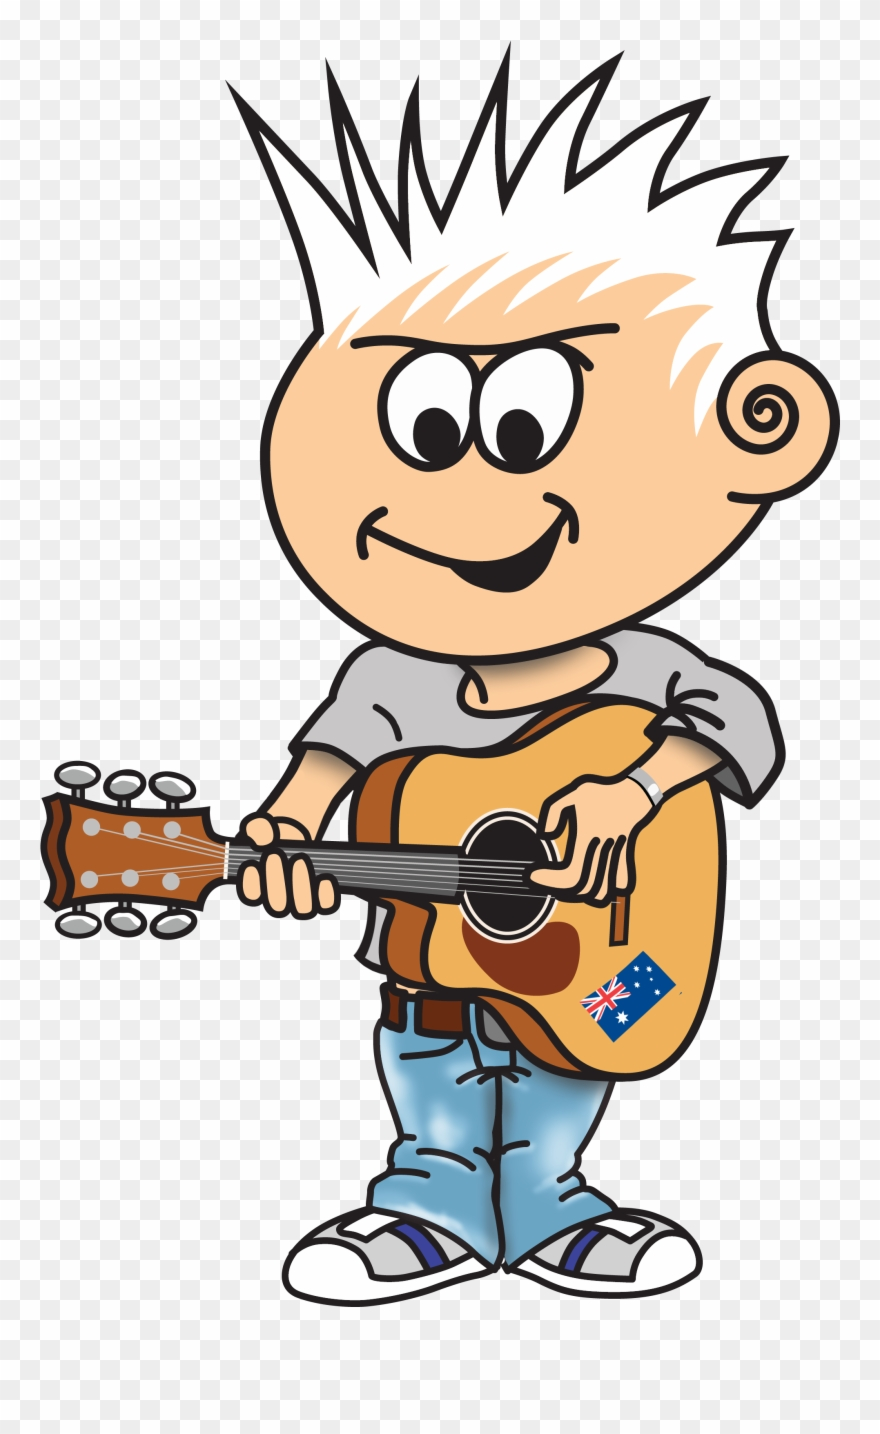 Contact Jon For And Live Music Jjcartoonpng.